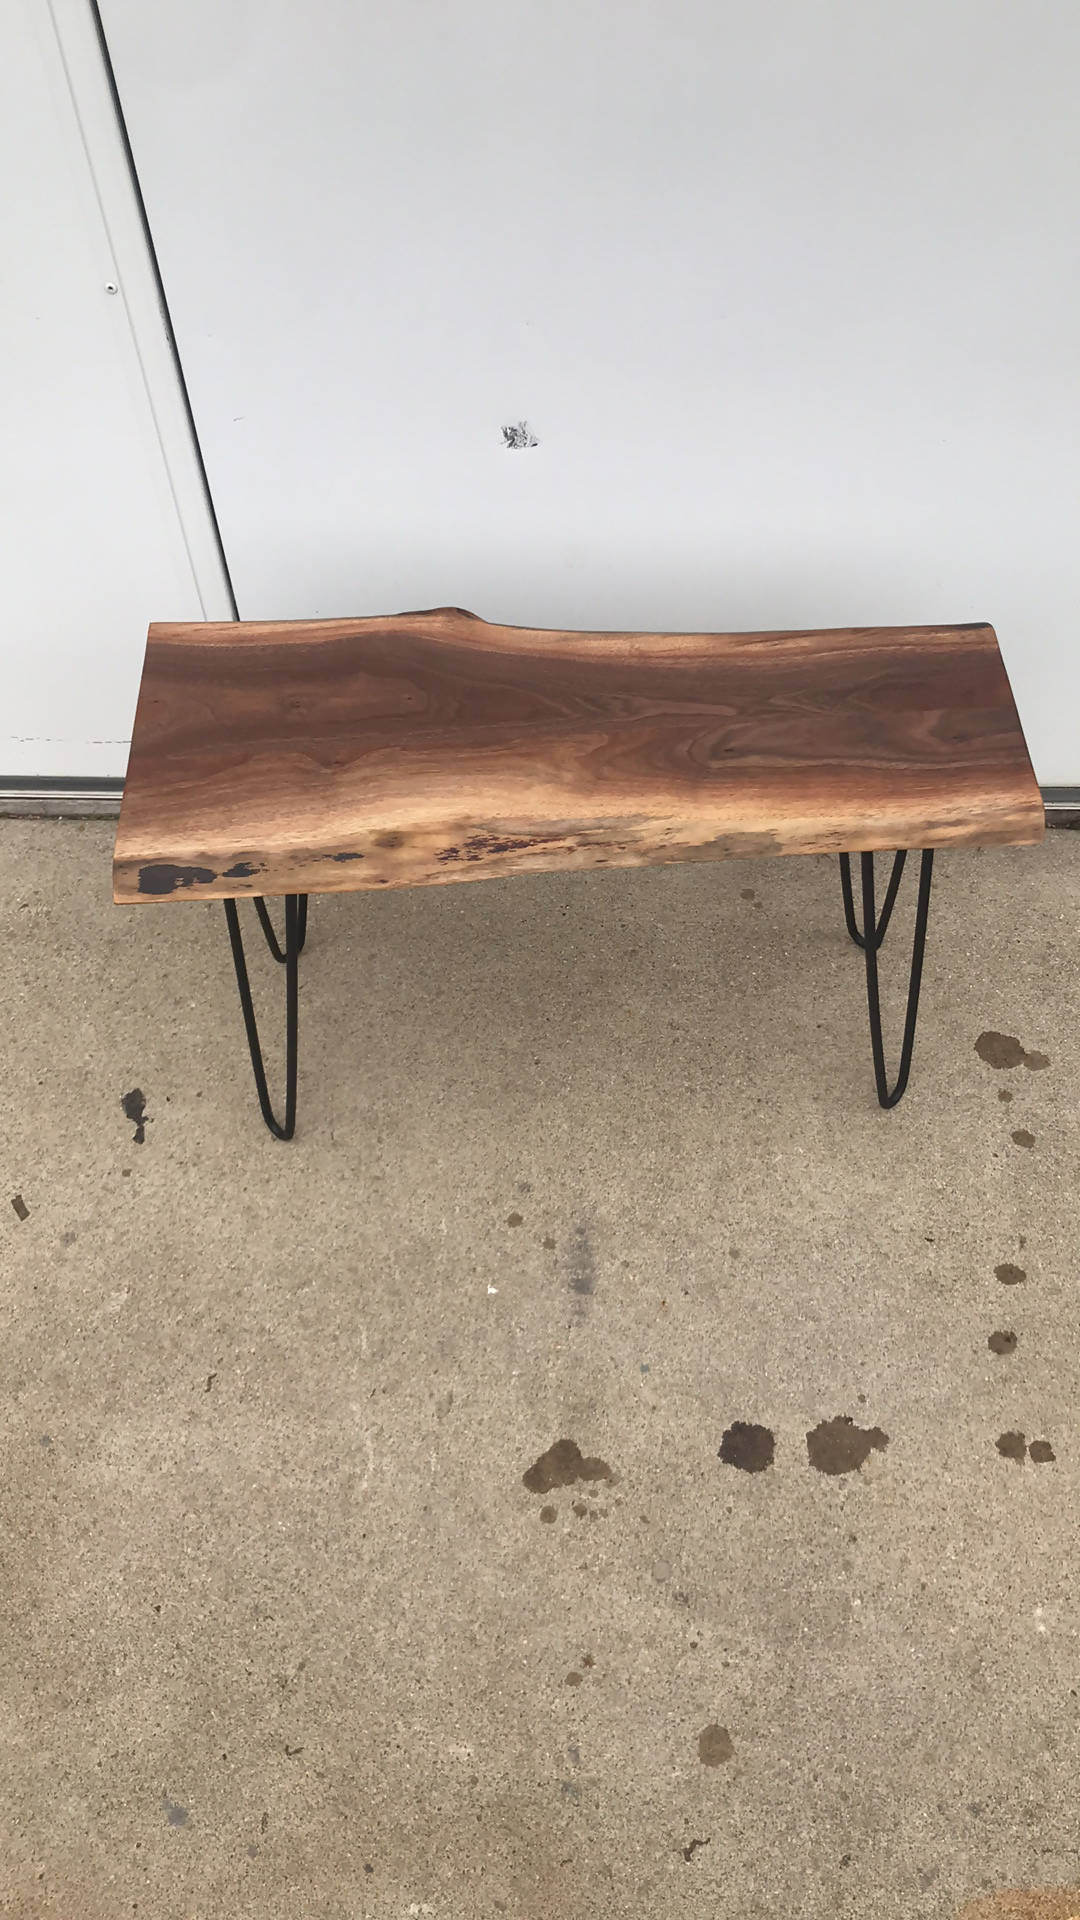 Walnut Bench - Cave Market Artisan Home Goods and Furniture